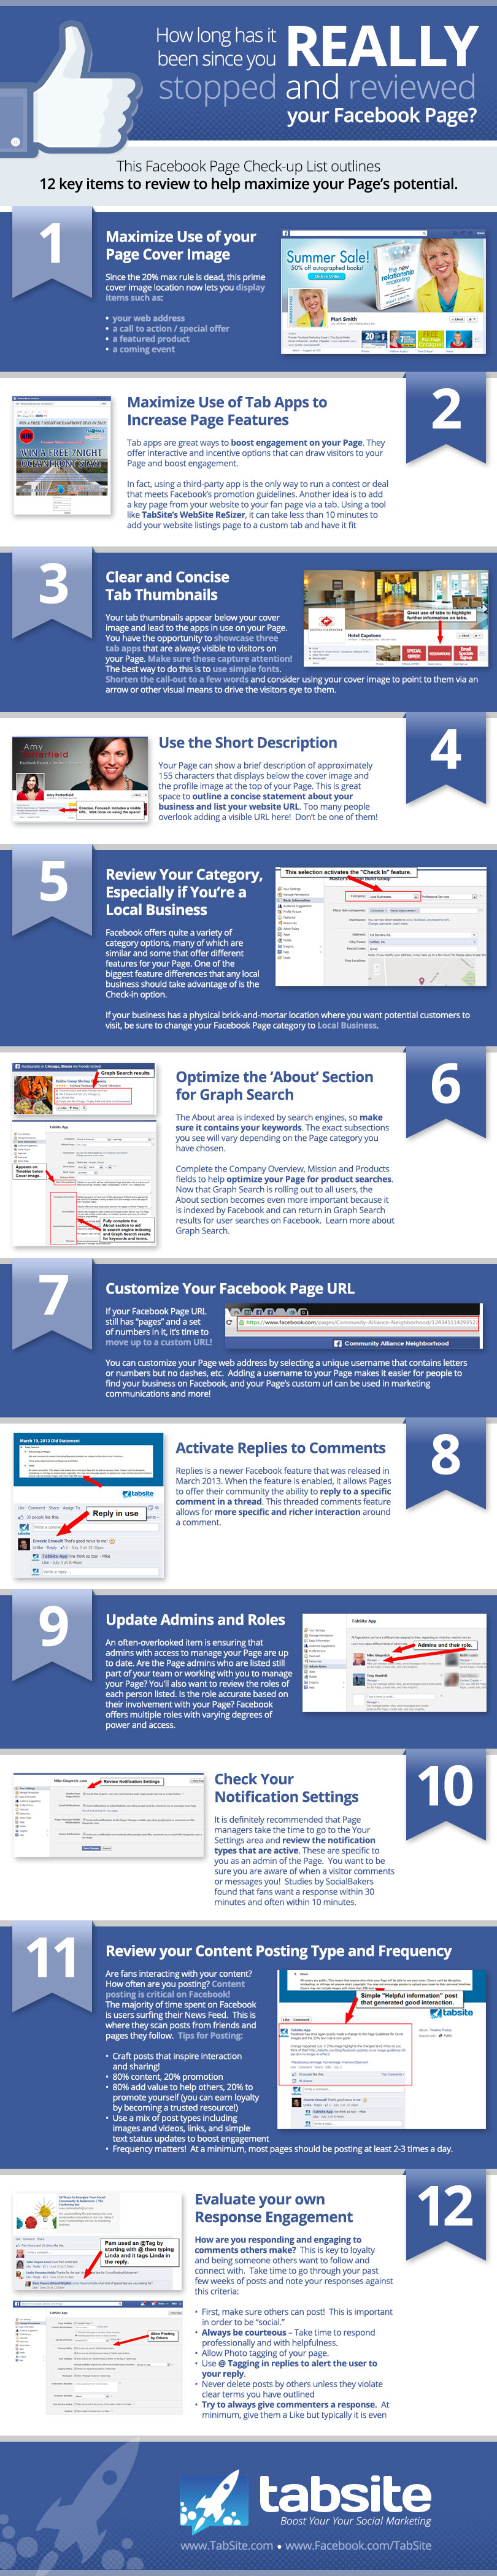 Simple Tips For Facebook Page admins and Managers: infographic